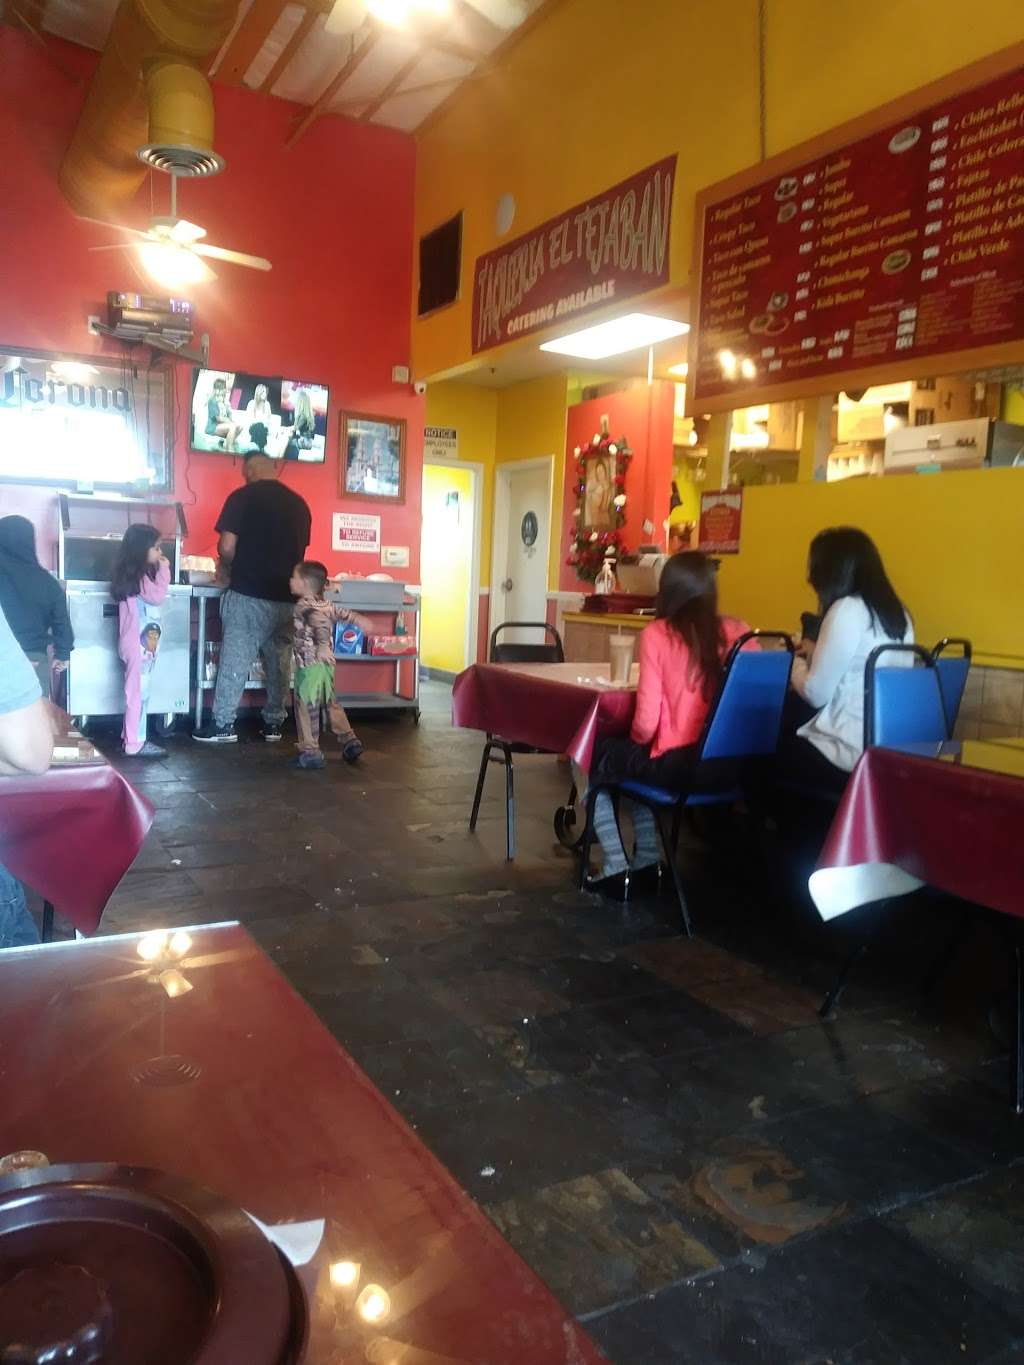 Taqueria El Tejaban - restaurant  | Photo 1 of 10 | Address: 890 E Travis Blvd C, Fairfield, CA 94533, USA | Phone: (707) 425-2174